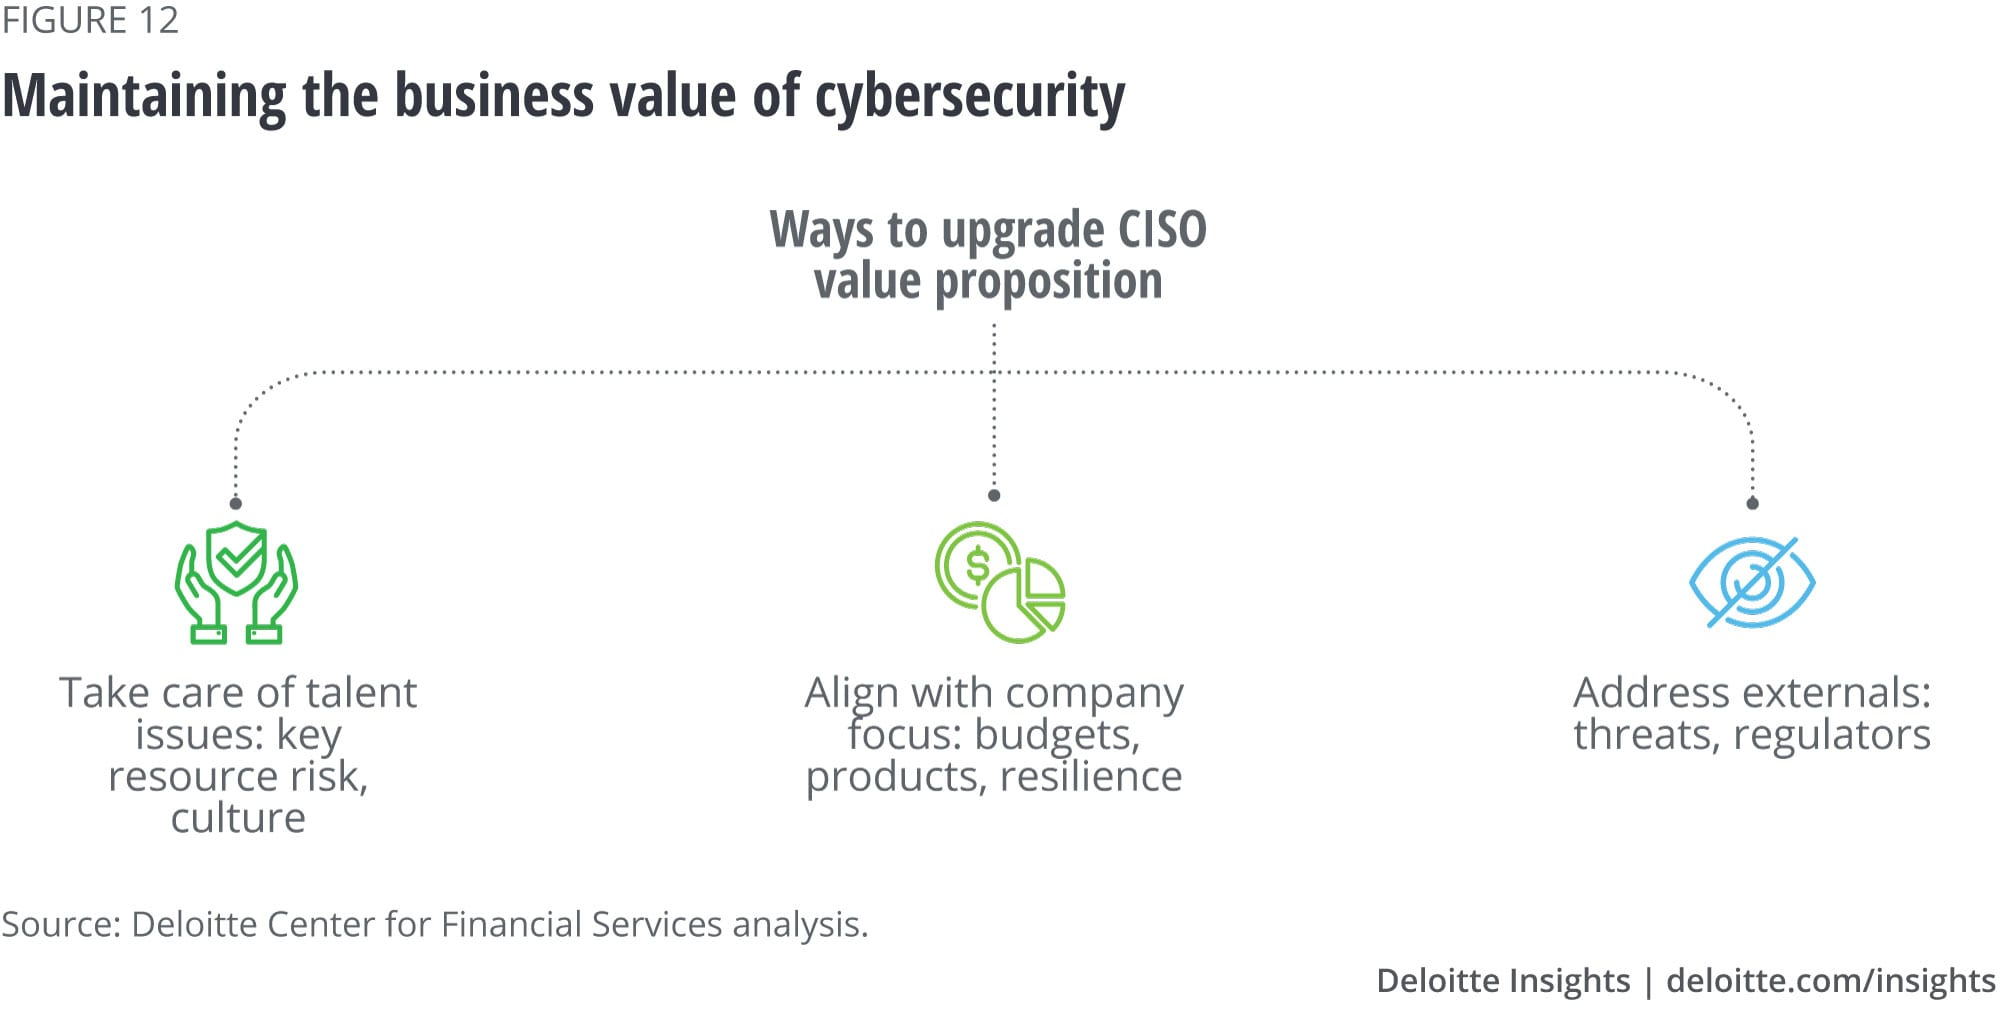 Maintain the business value of cybersecurity